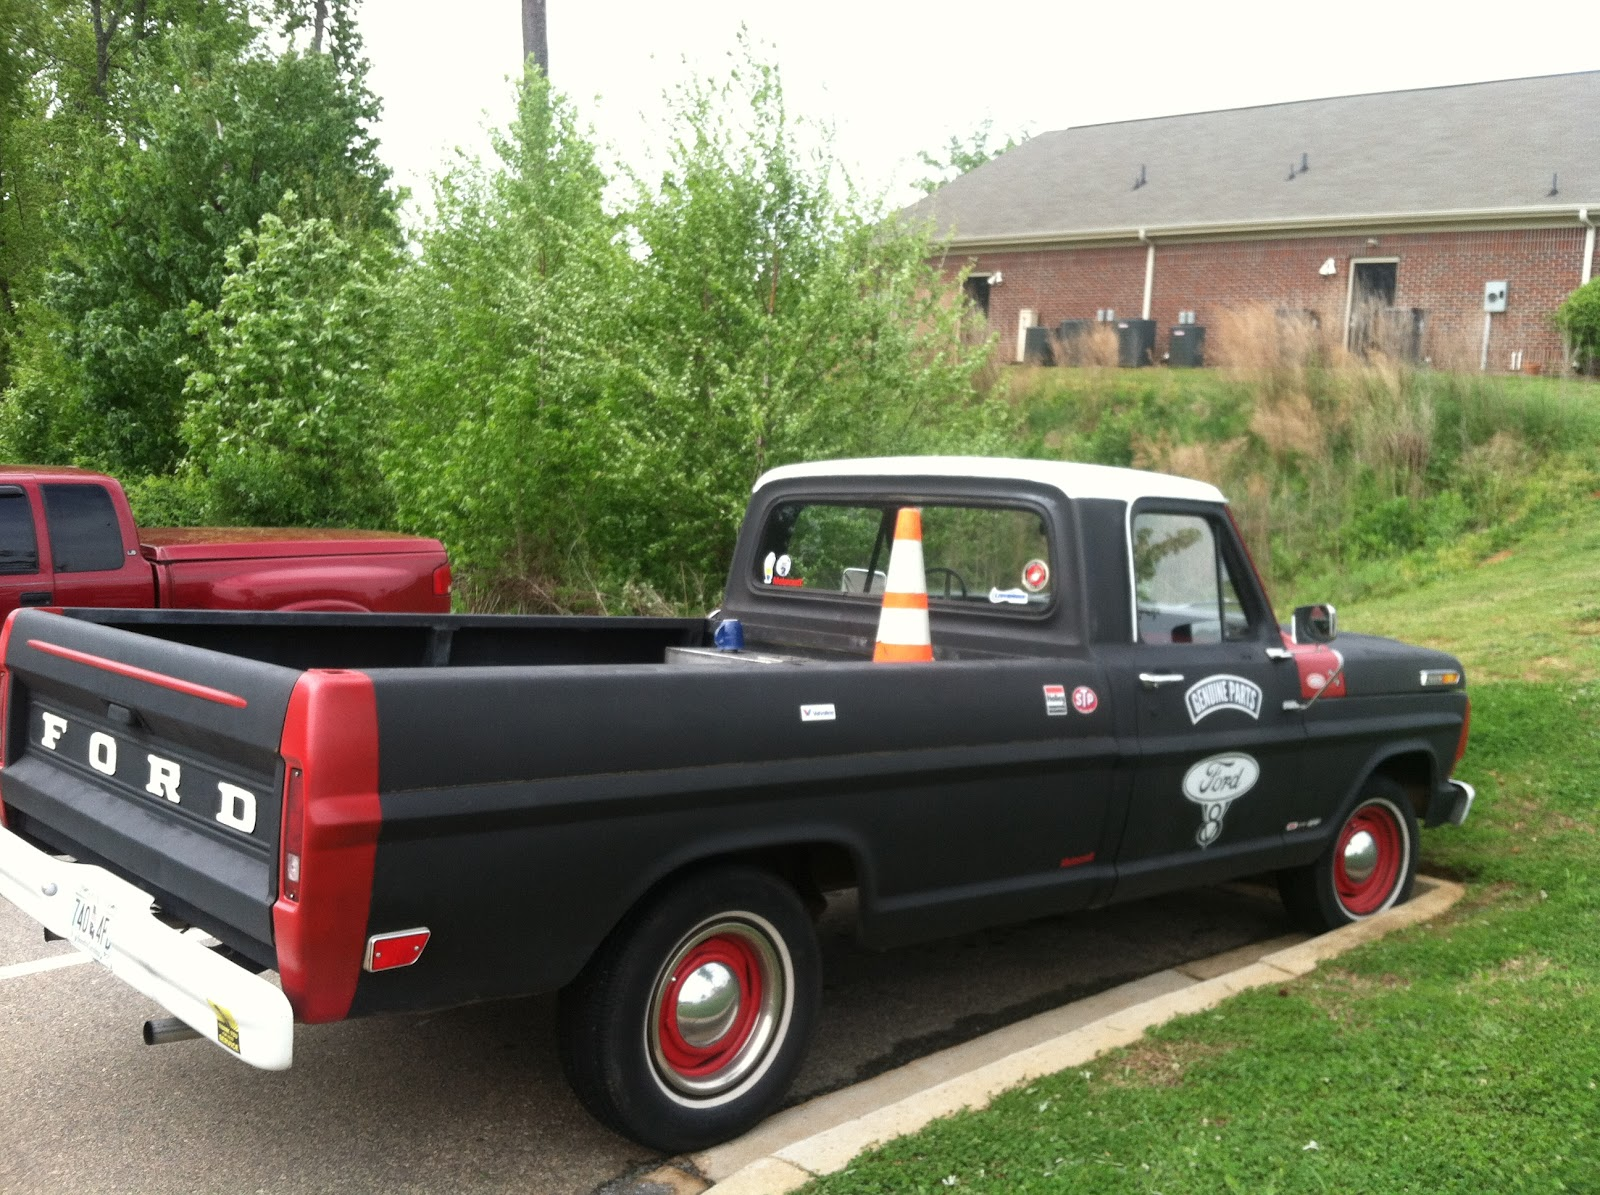 Ford f-100 1968 photo - 3